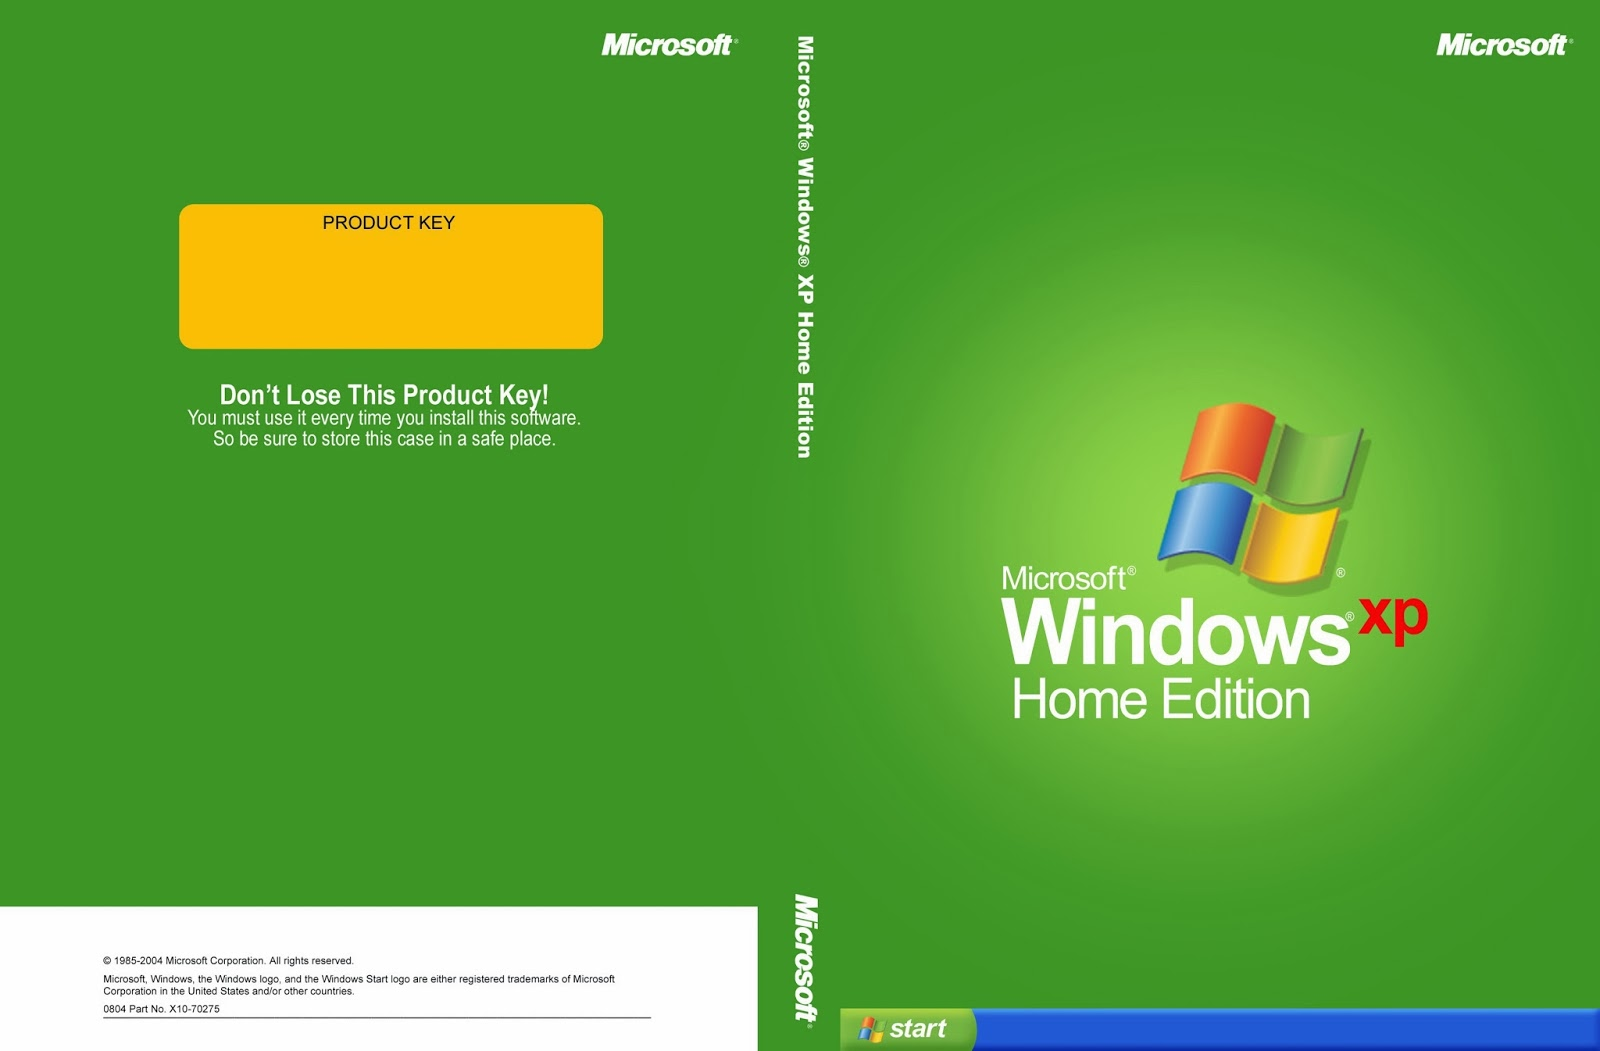 Windows xp turkish 32 bit iso download with key timgames for Window xp iso